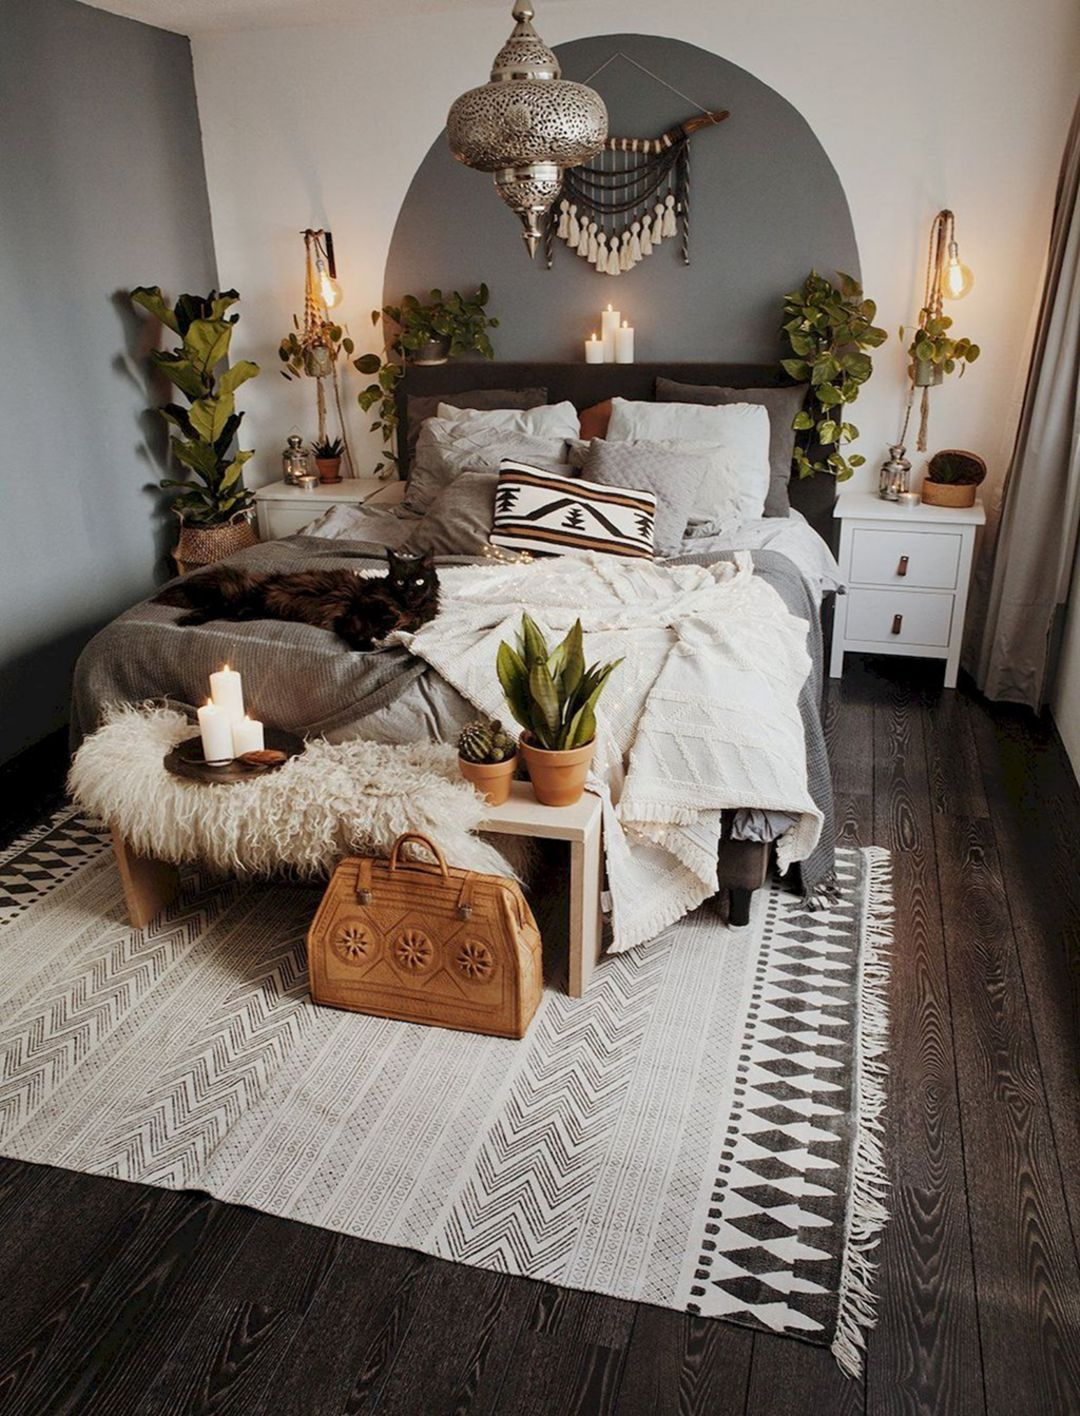 20 Shocking Bohemian Bedroom Decoration Ideas for You to See #bedroom